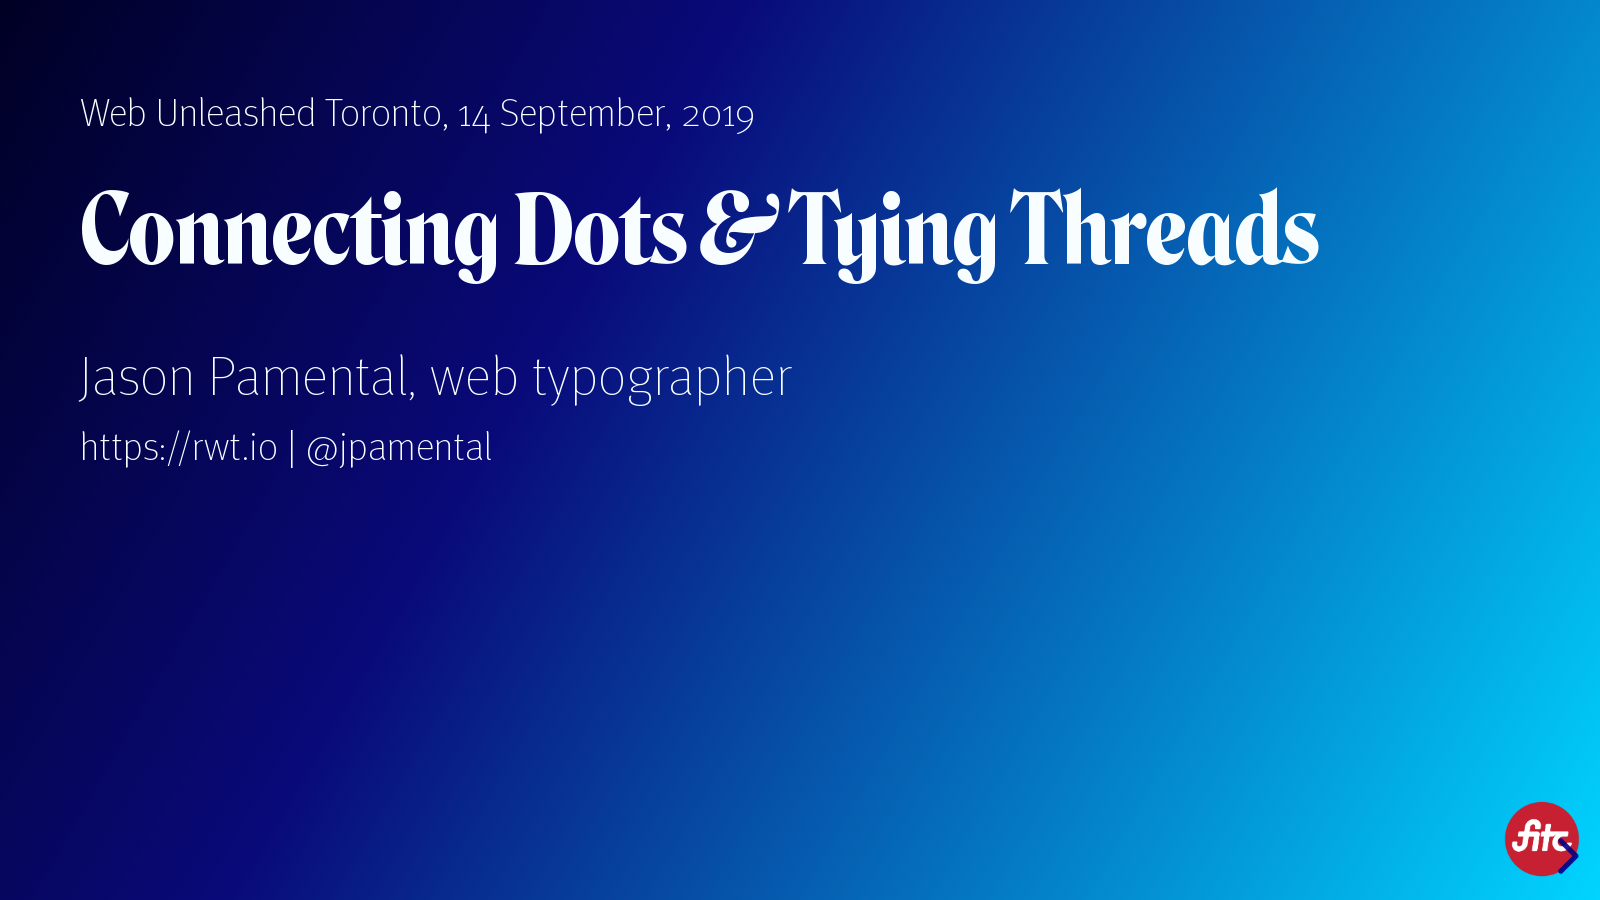 Connecting Dots & Tying Threads: Web Unleashed Wrap by Jason Pamental